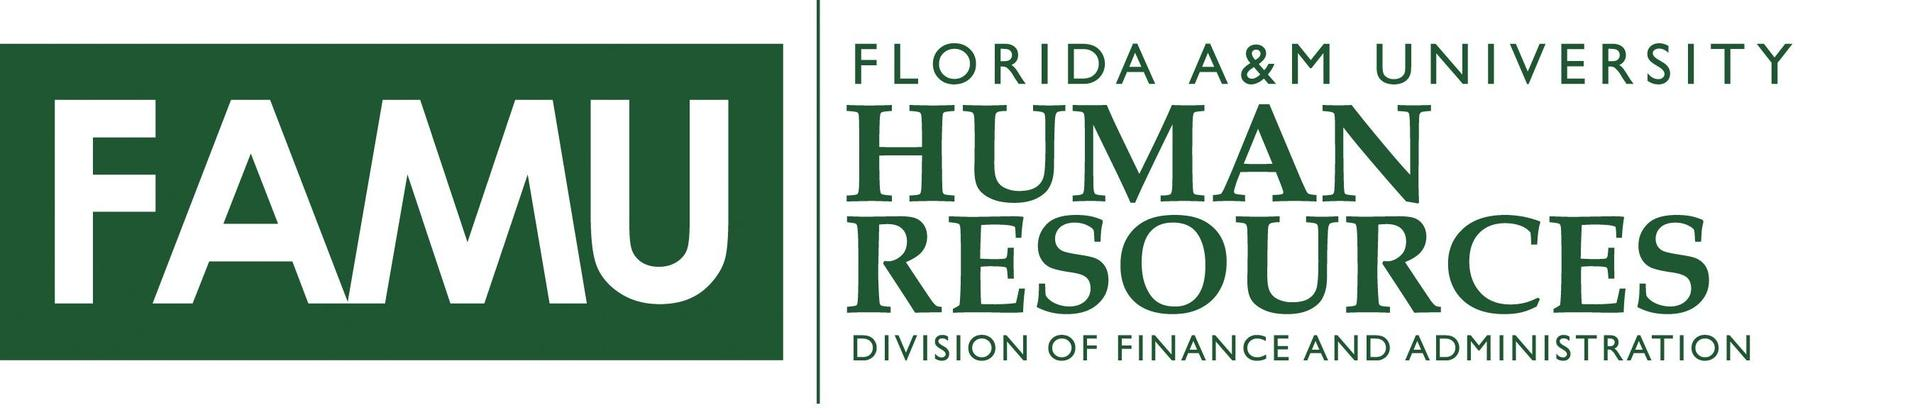 FAMU Human Resources